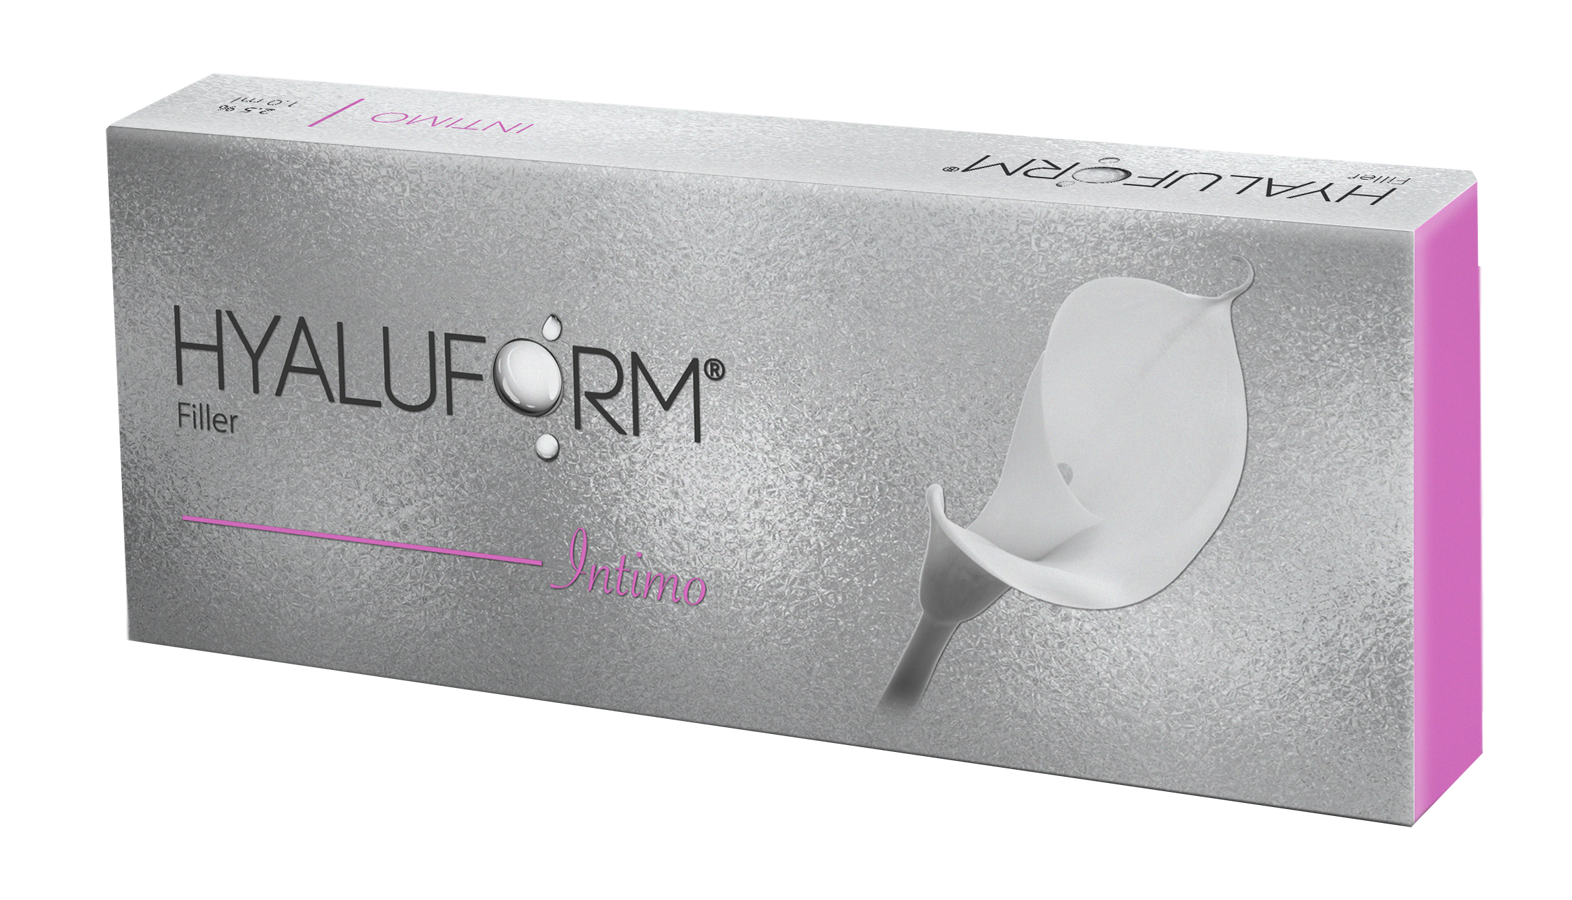 Hyaluform® 2,5% Filler Intimo филлер | Мартинекс